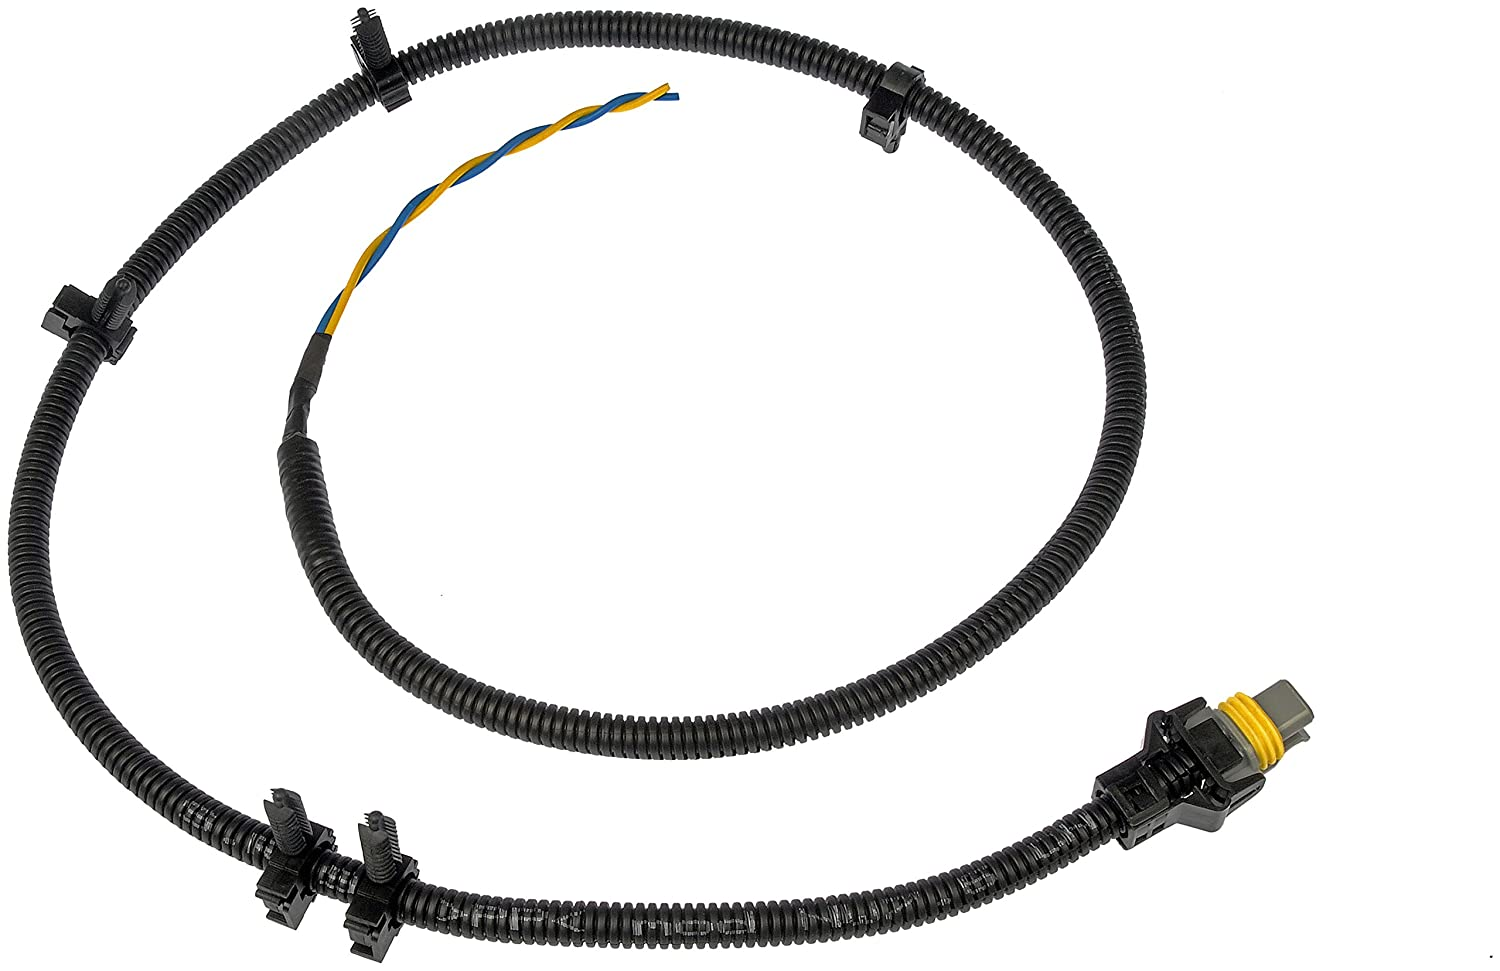 Amazon.com: Dorman 970-040 ABS Wheel Speed Sensor Wire Harness: Automotive